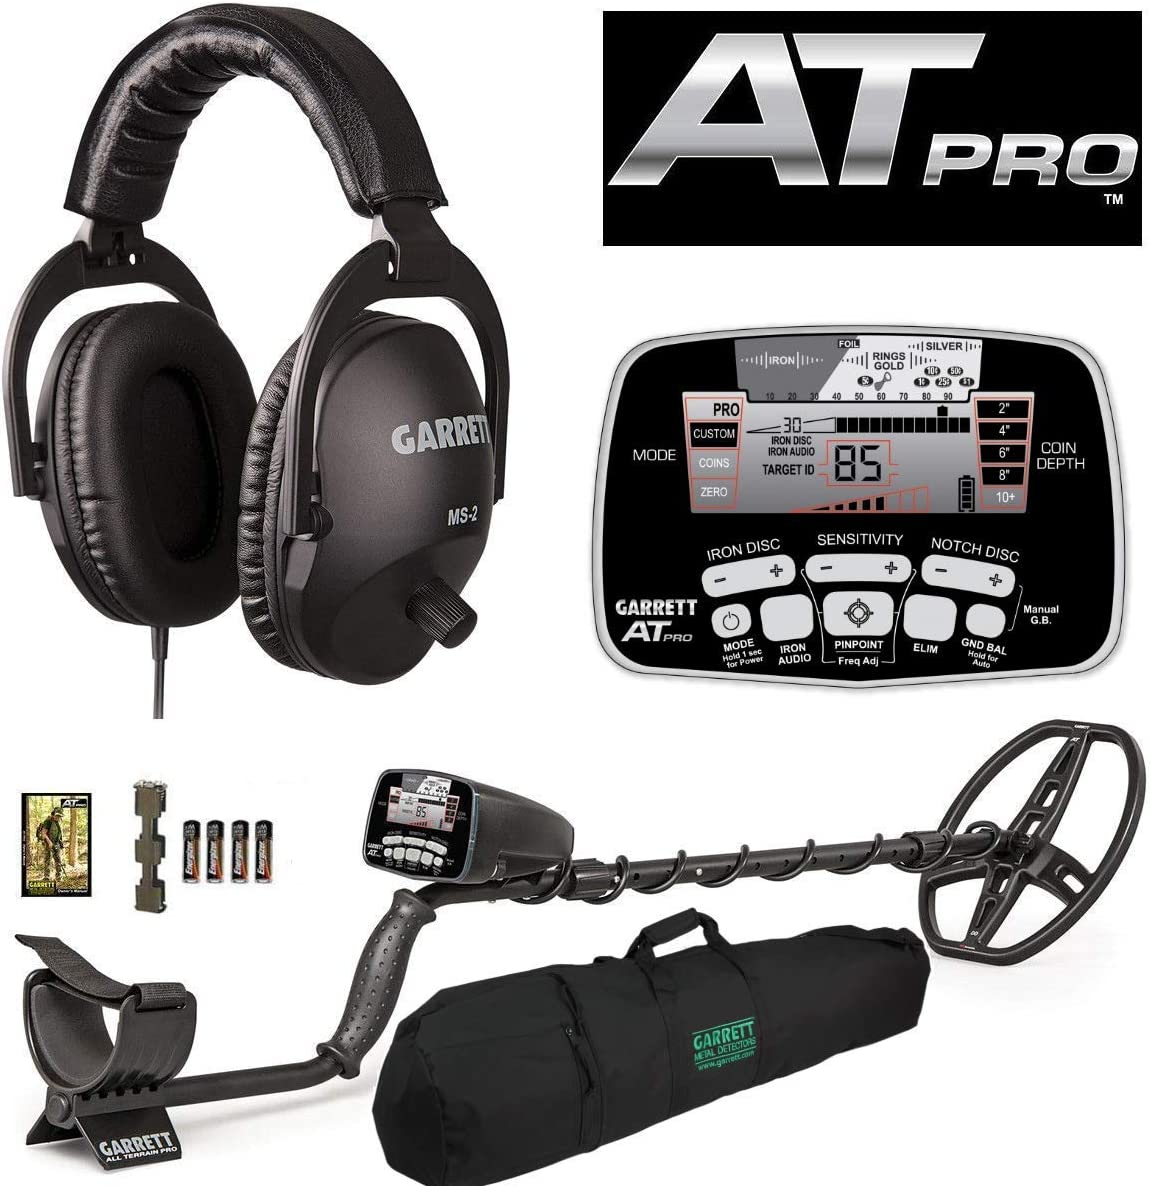 Garrett AT PRO with MS-2 Headphones and 50 Travel Carry Bag